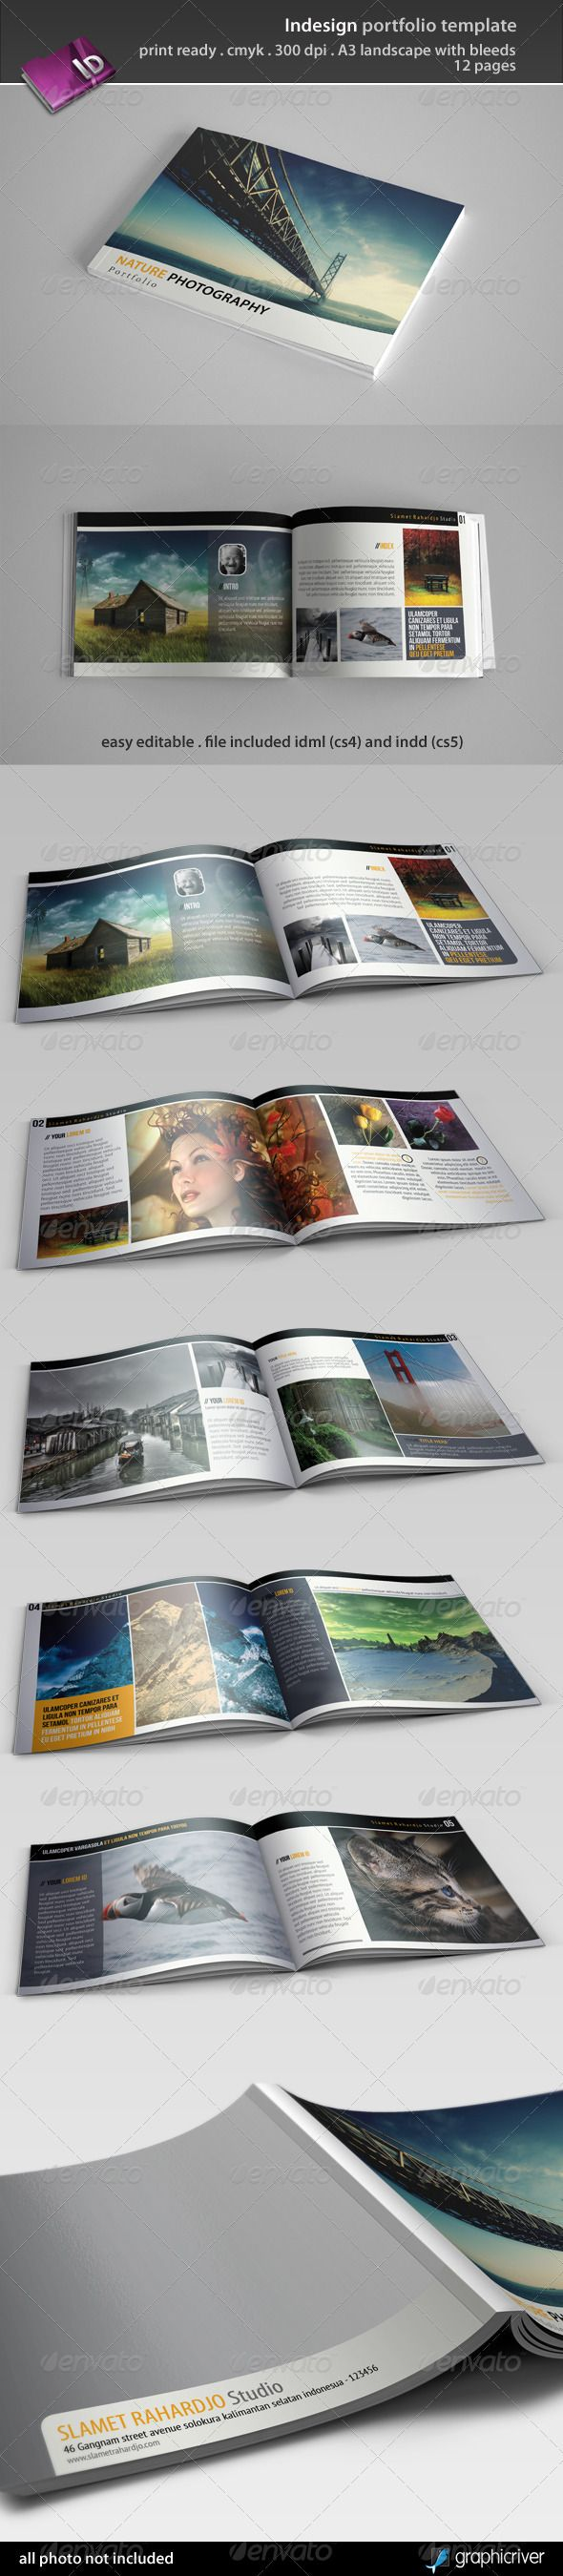 24 best Indesign Portfolio Ideas images on Pinterest | Editorial ...